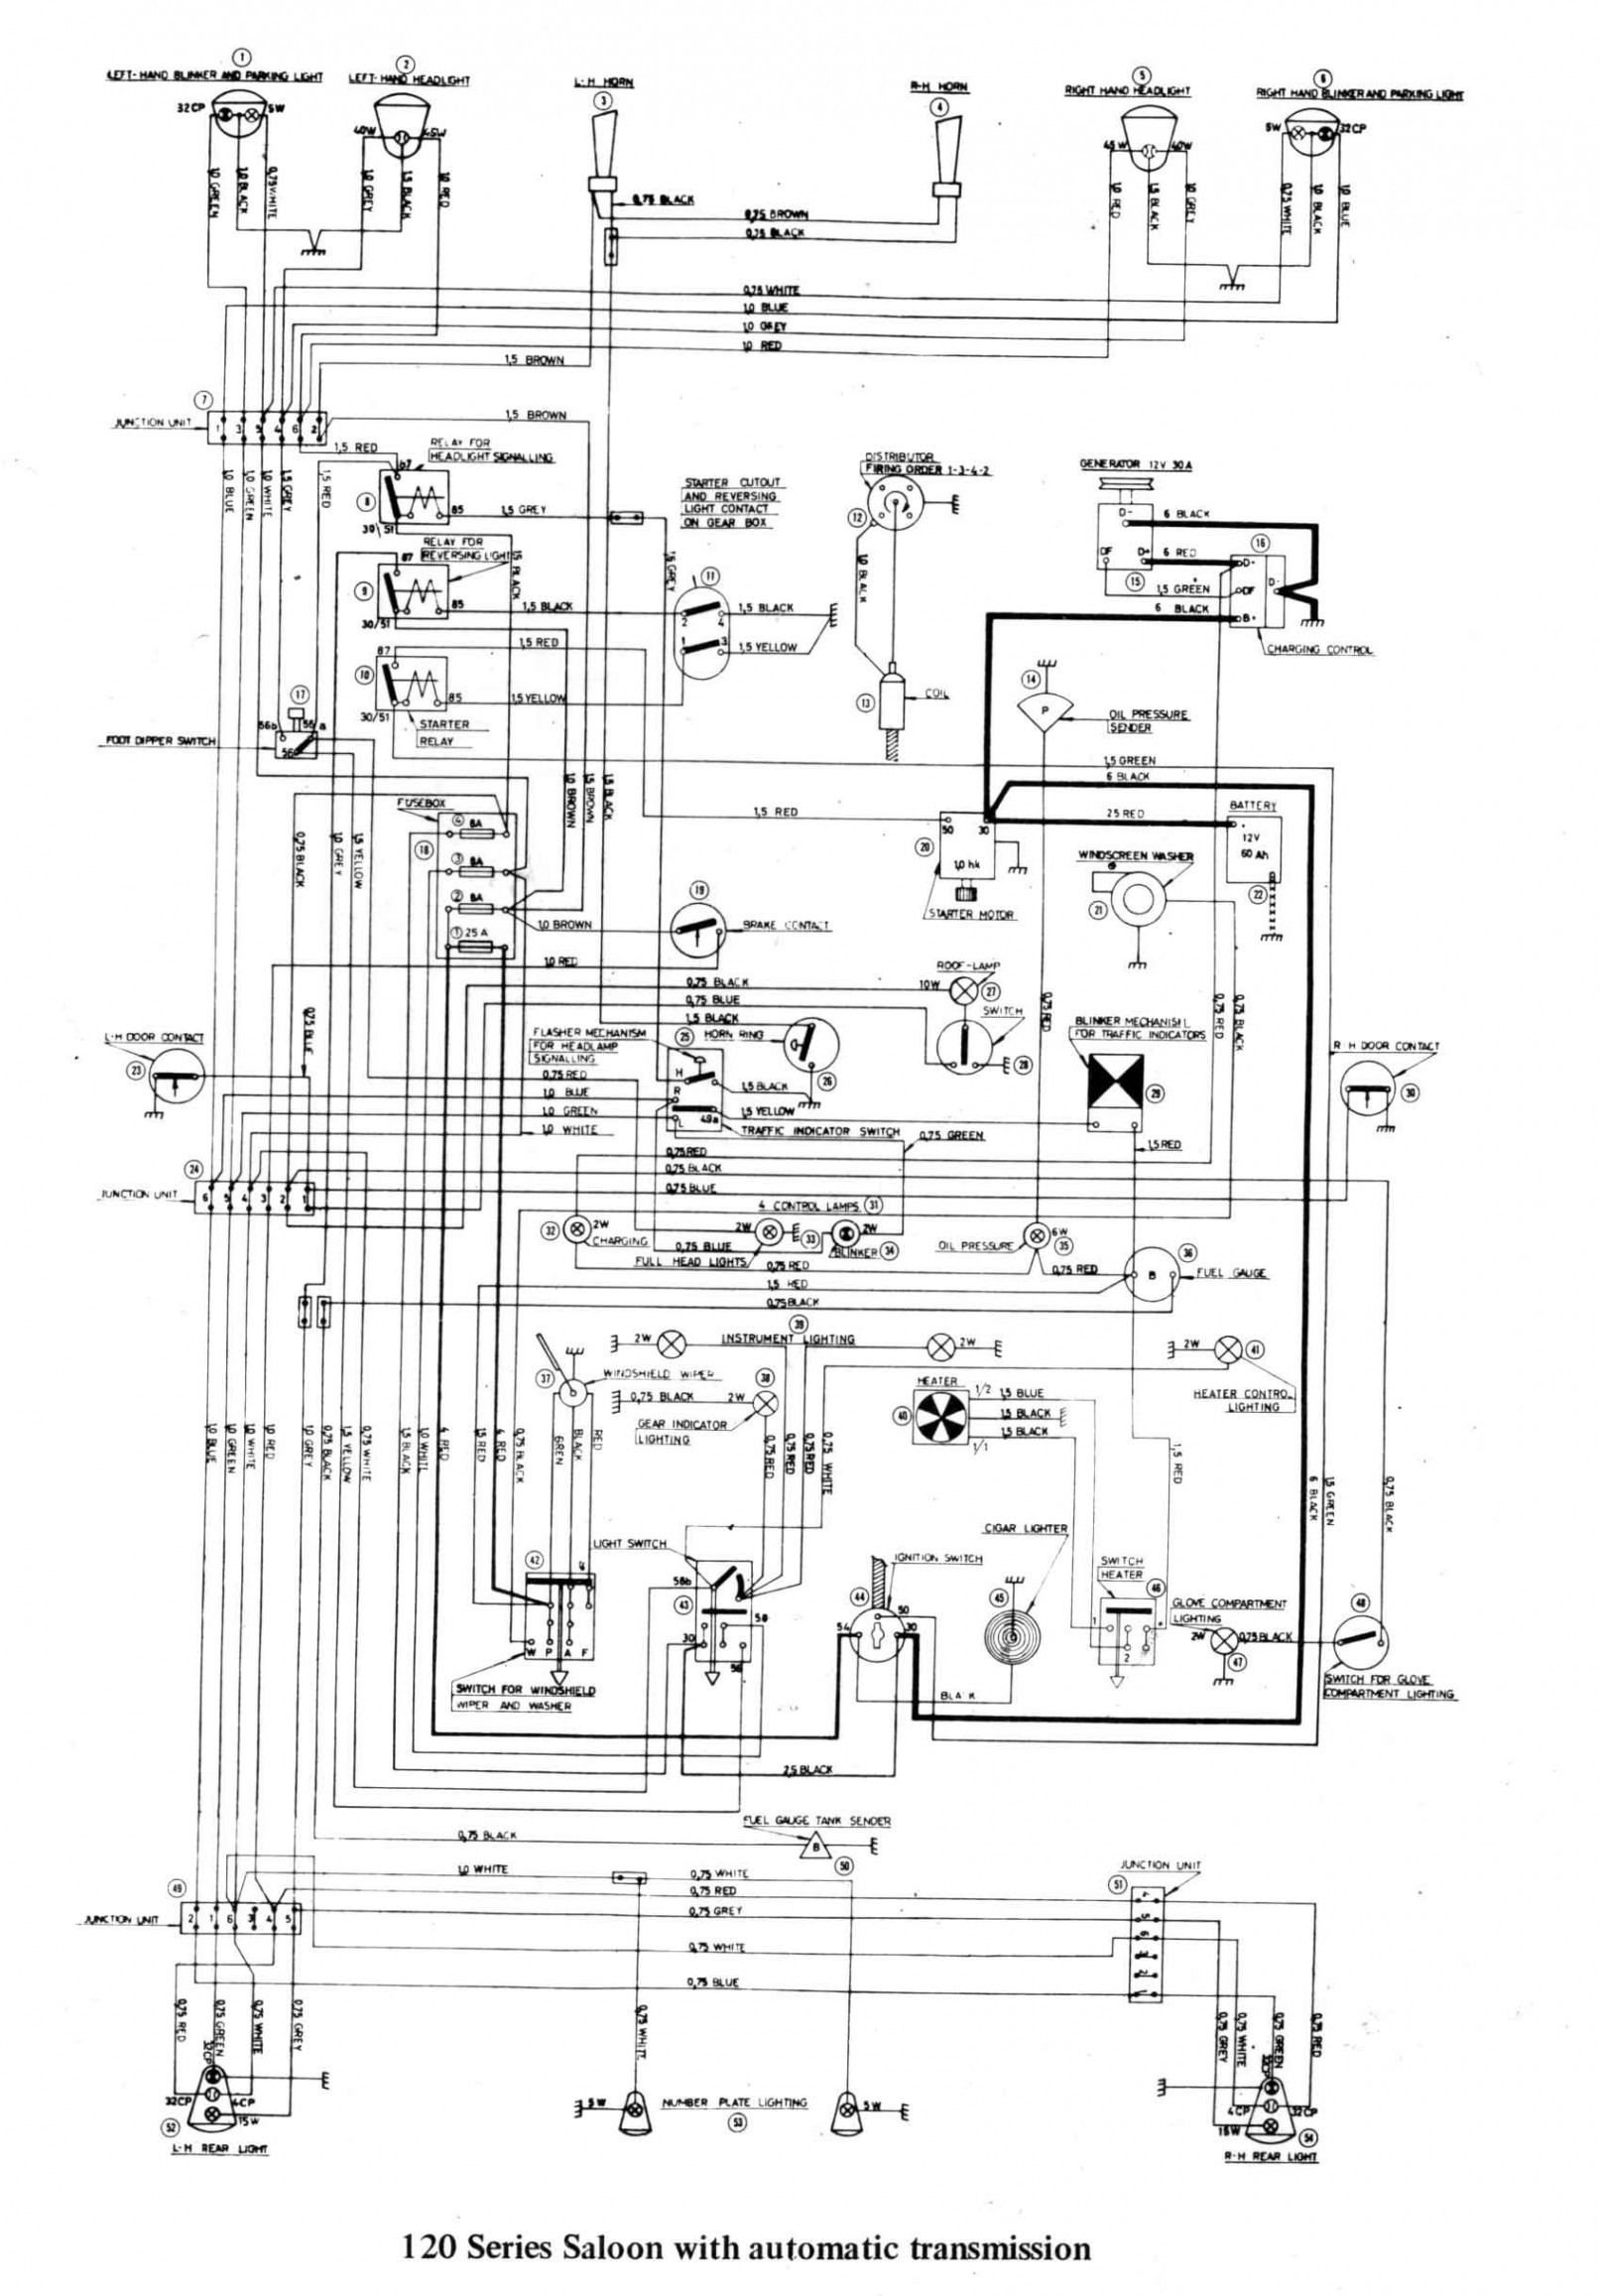 Auto Parts Diagram toyota toyota Parts Diagram – Auto Parts Diagram Manual ] Saab Plug M16x1 5 Of Auto Parts Diagram toyota toyota Parts Diagram – Auto Parts Diagram Manual ] Saab Plug M16x1 5